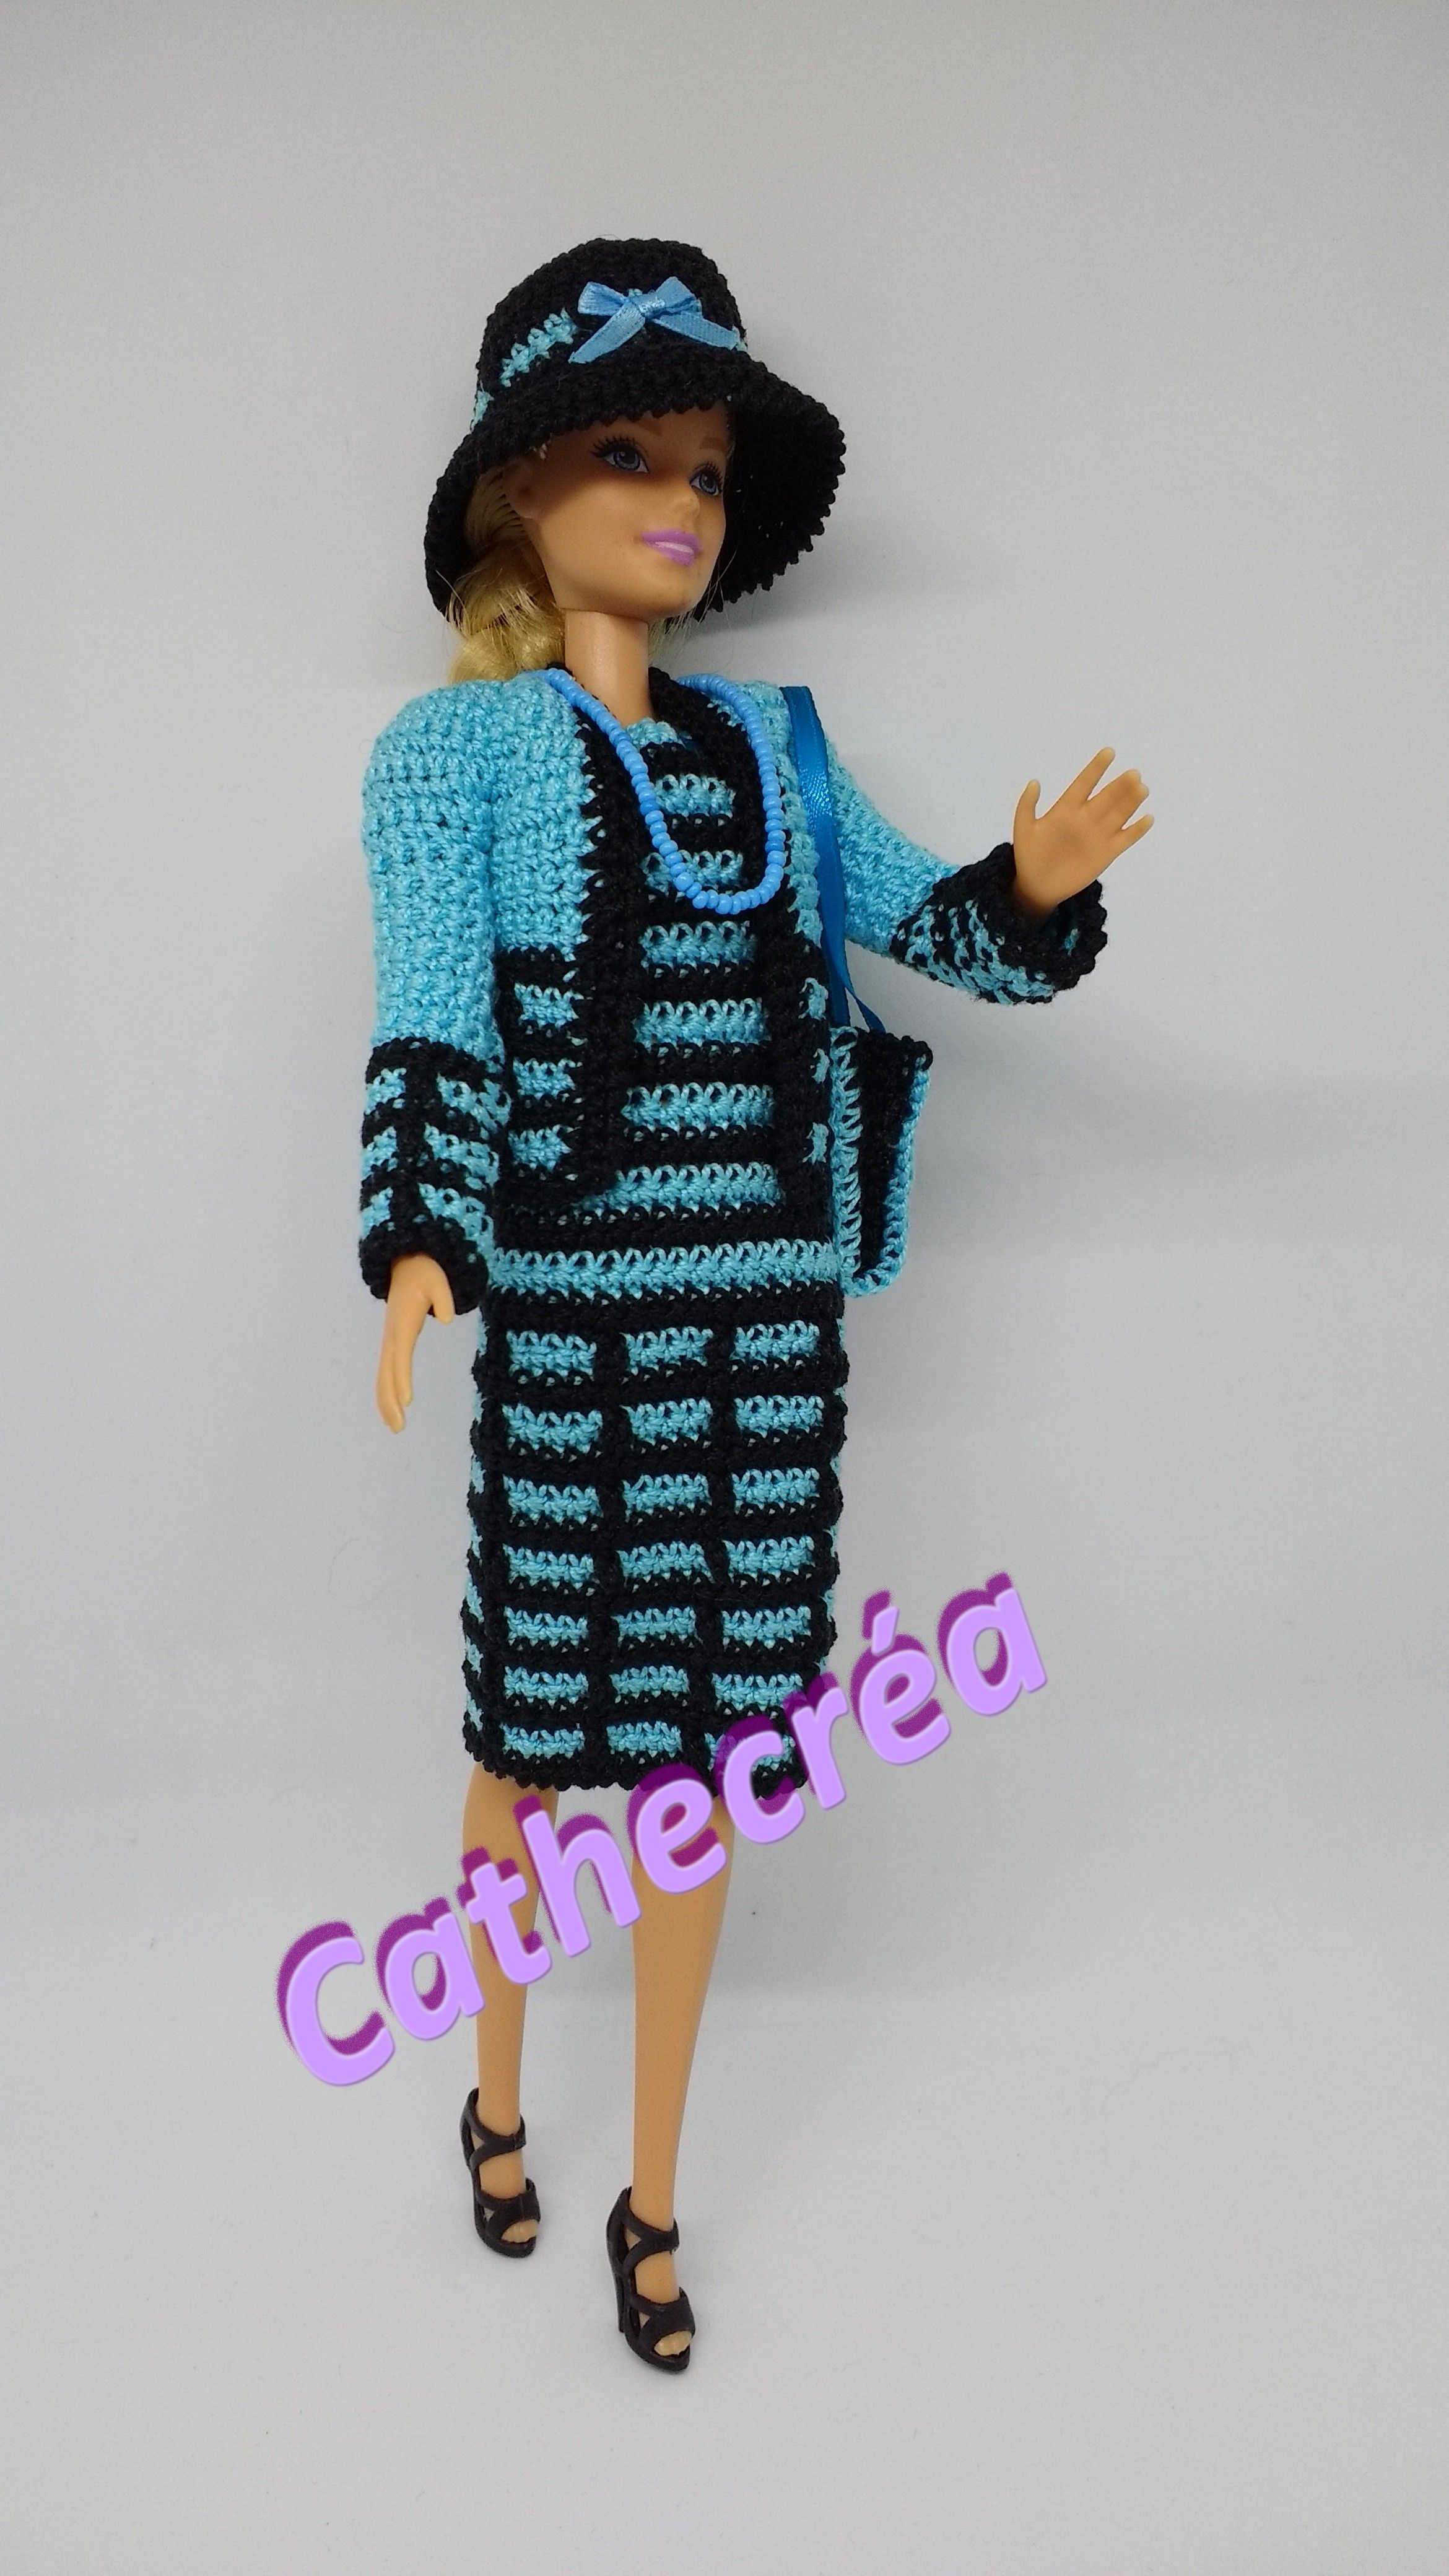 Pin de Crystal Ridenour en barbie crochet | Pinterest | Barbie ...